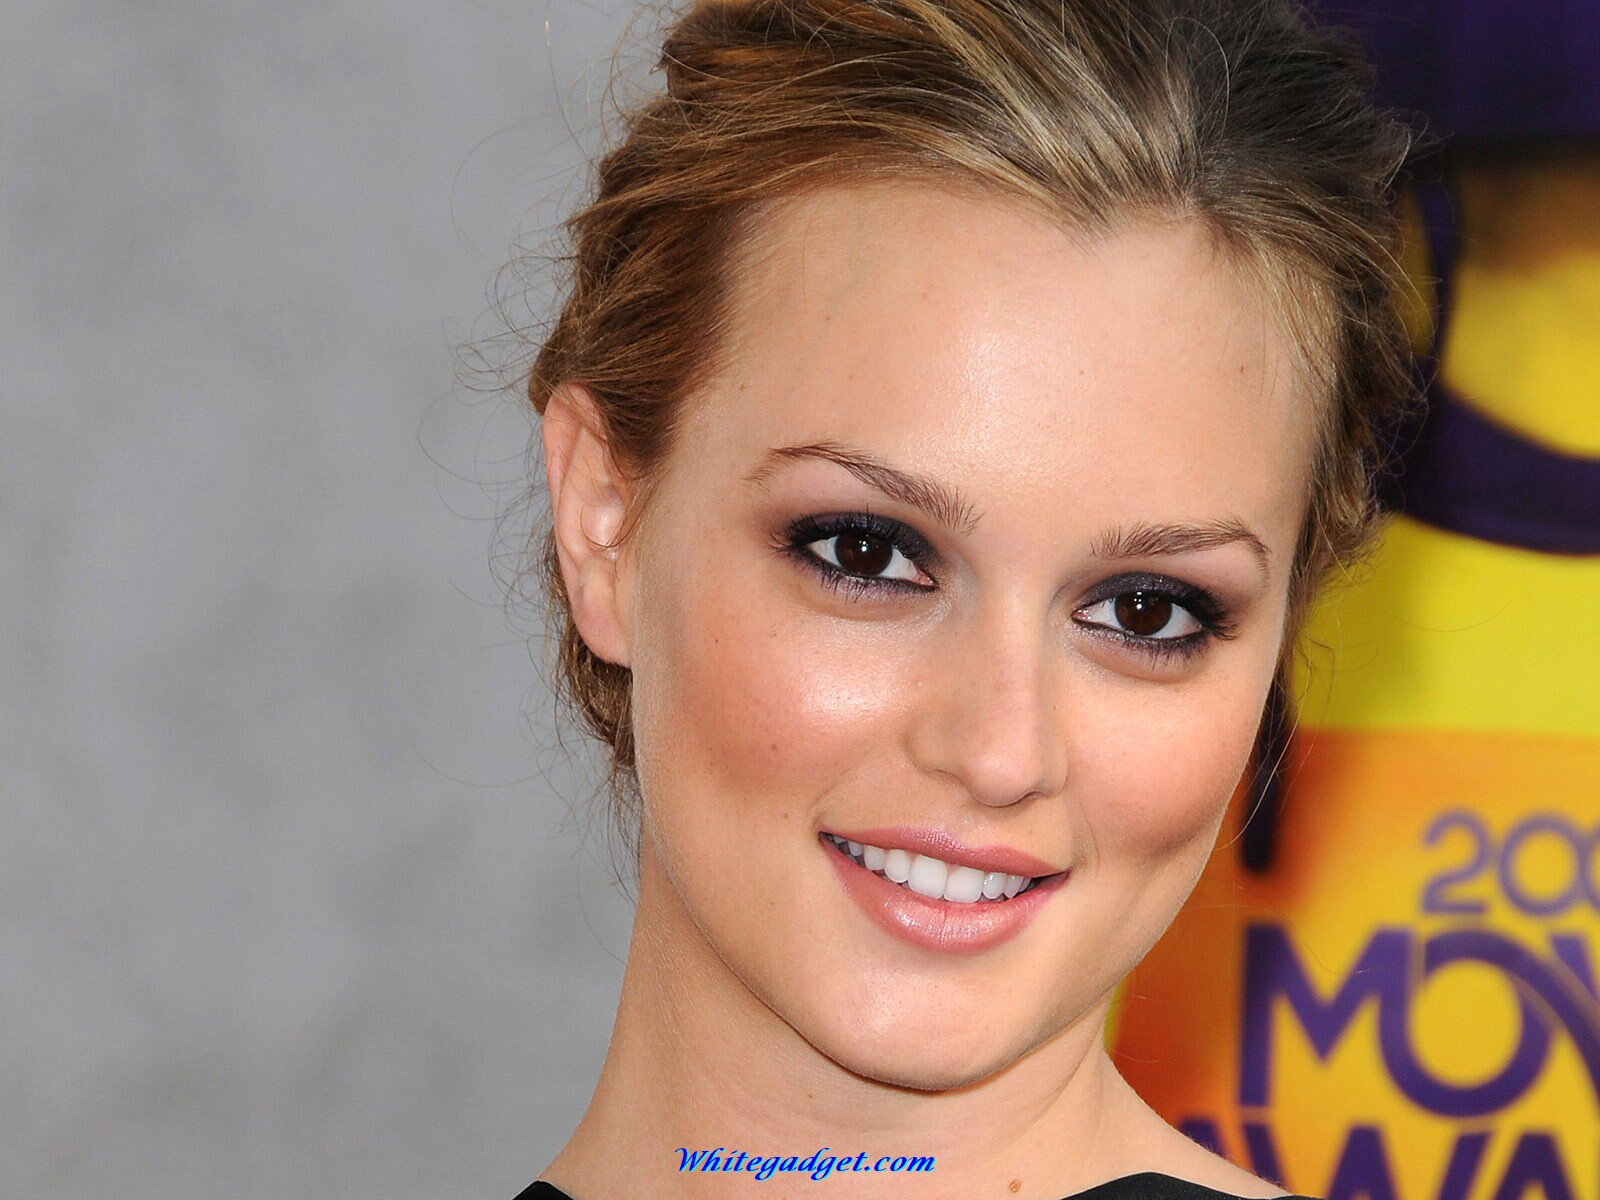 Leighton Meester Famous Woman Big Photo High-Res Photo